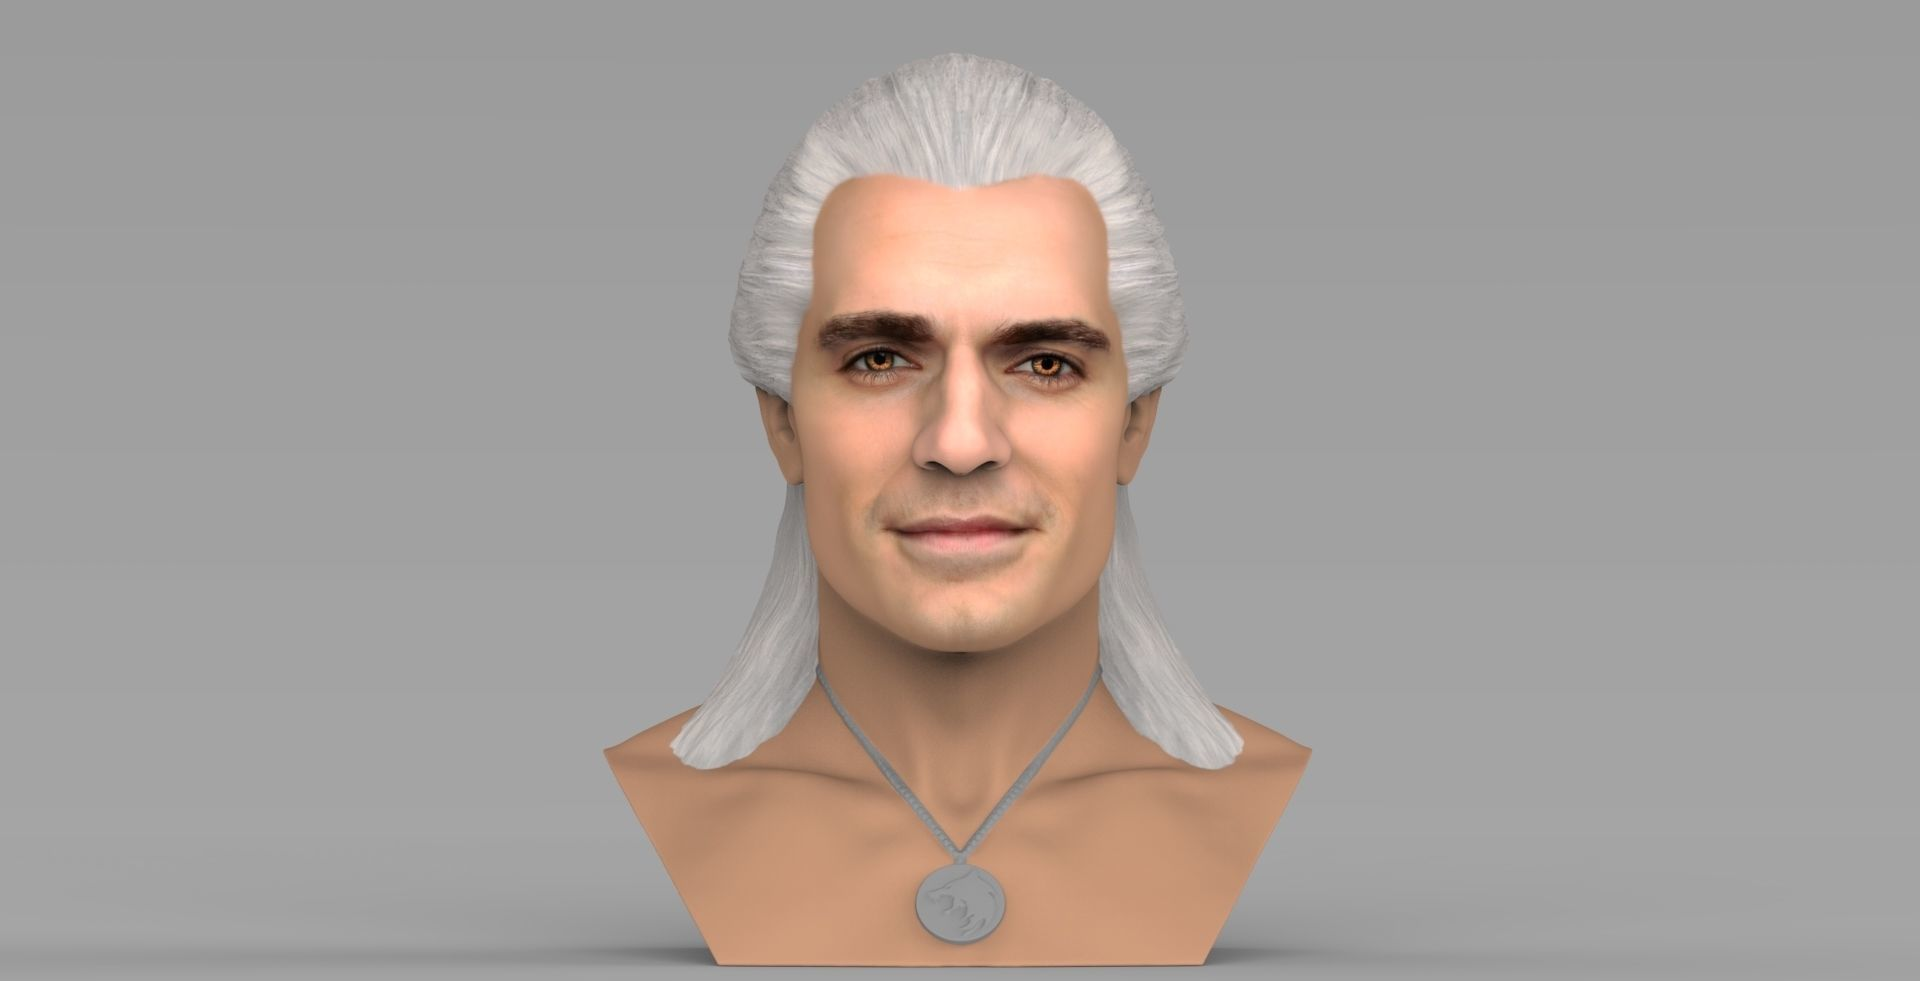 Geralt of Rivia The Witcher Cavill bust full color 3D printing